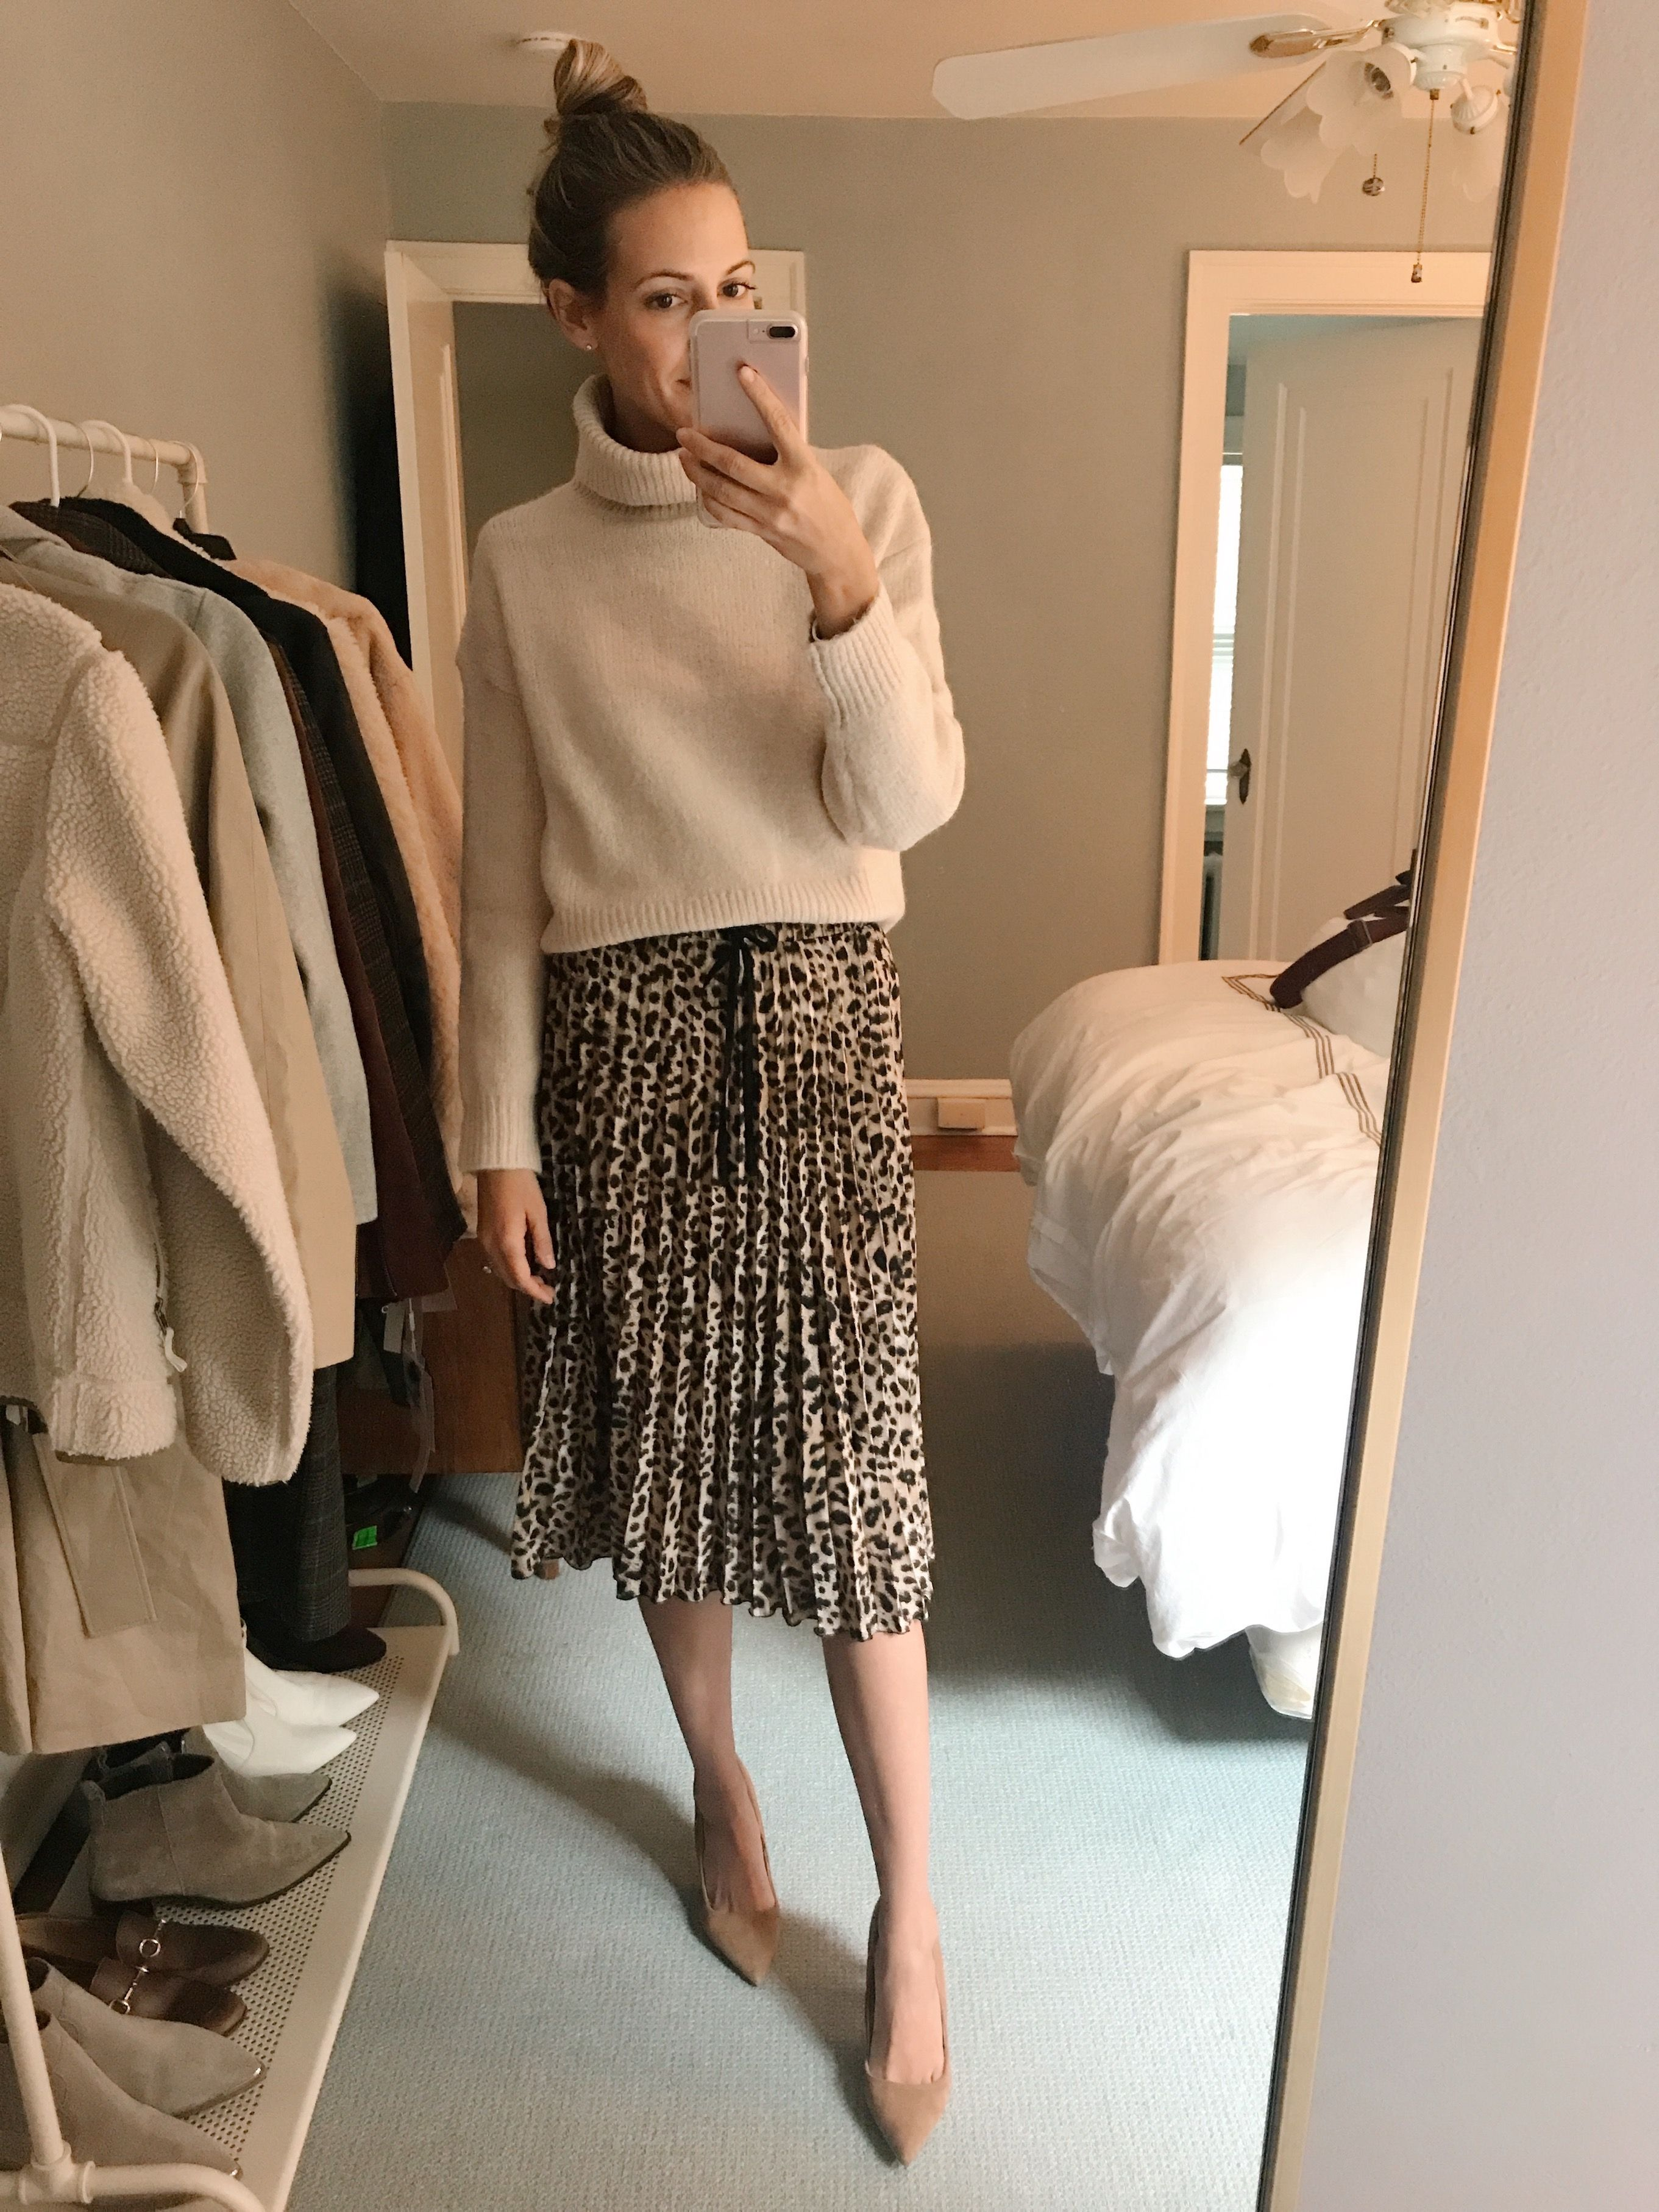 5867cc6854a0 h&m inexpensive sweaters #ootd Pleated Skirt Outfit, Leopard Skirt  Outfit, Skirt